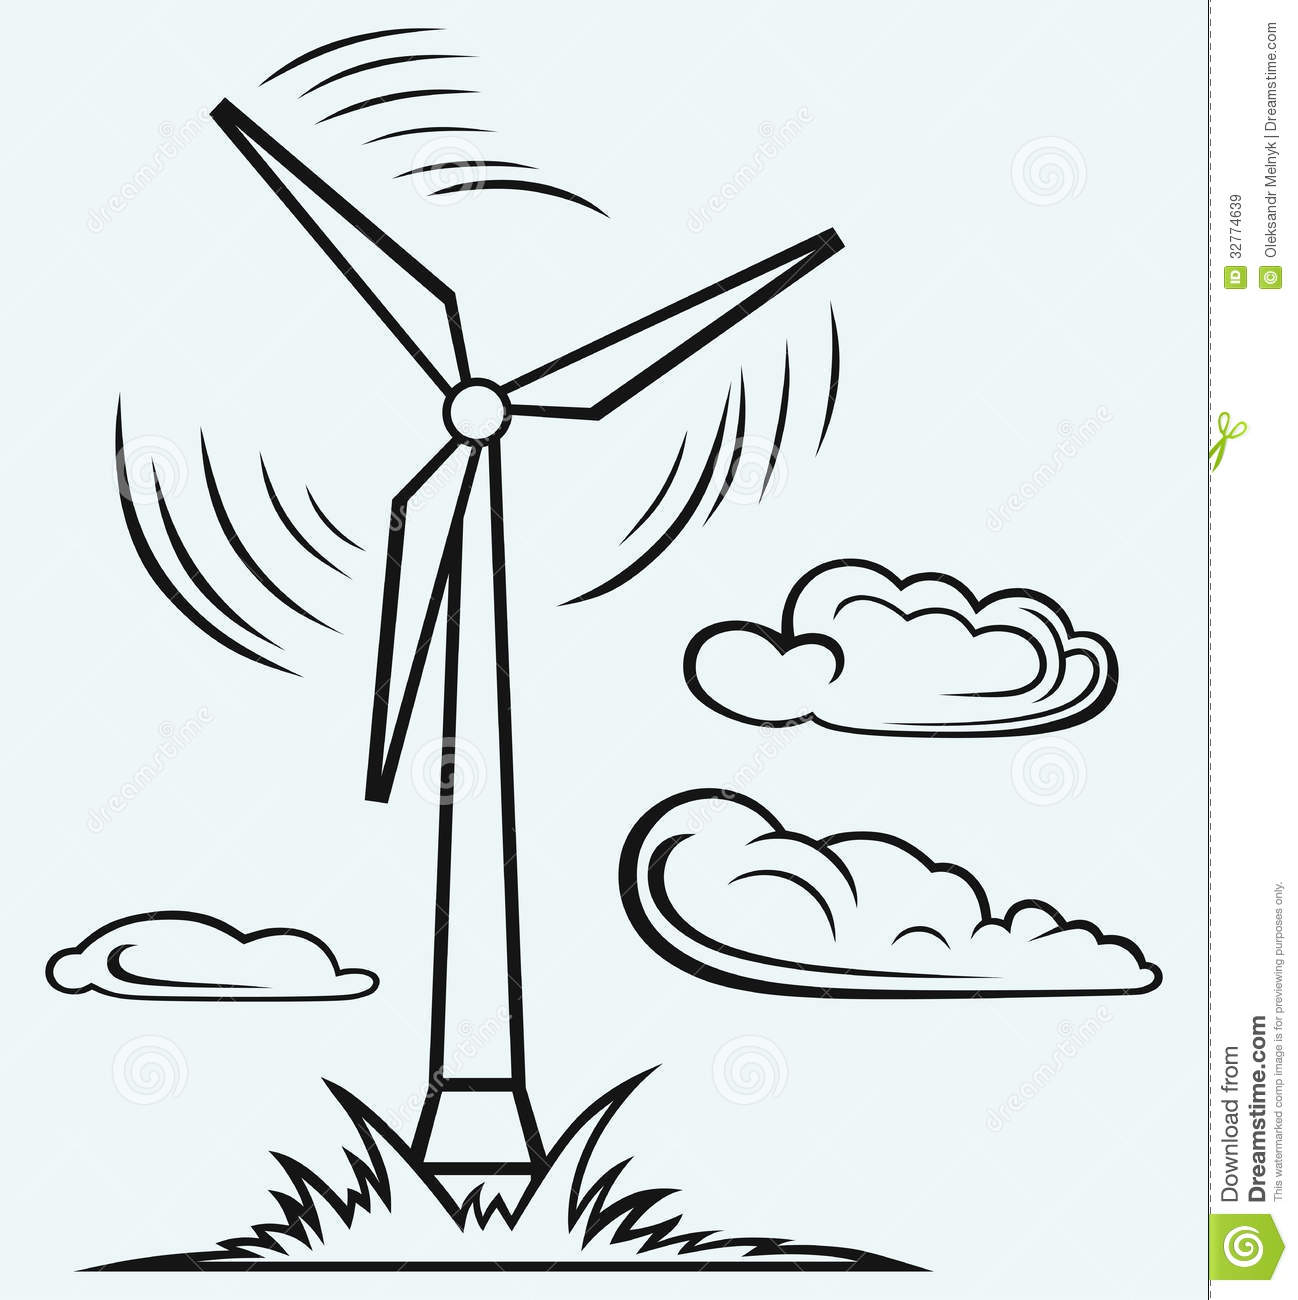 Share Electric Windmill Prices George Mayda